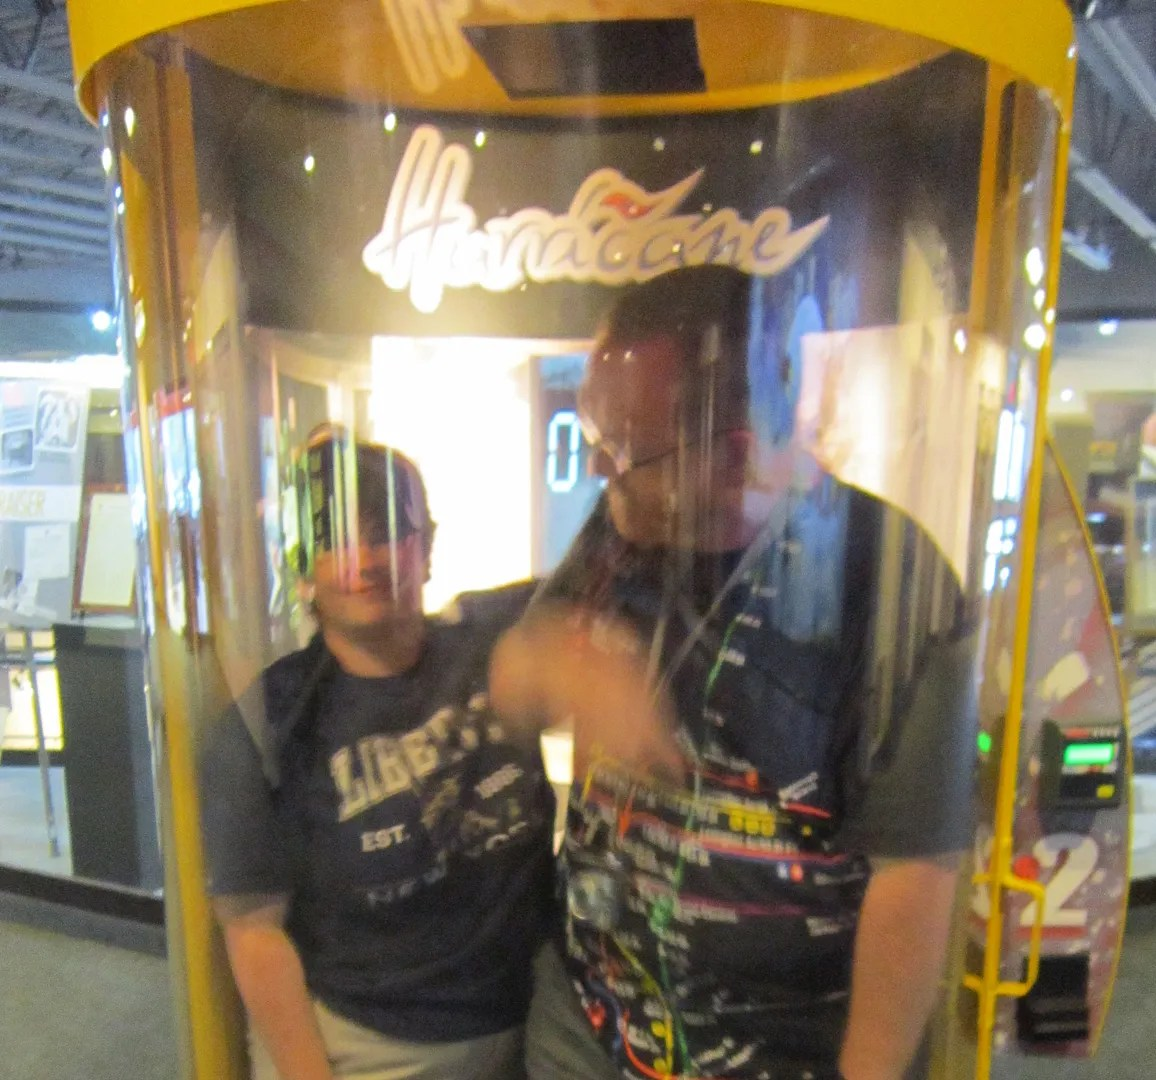 hurricane wind simulator, Kansas Cosmosphere & Space Center, Hutchinson, Kansas